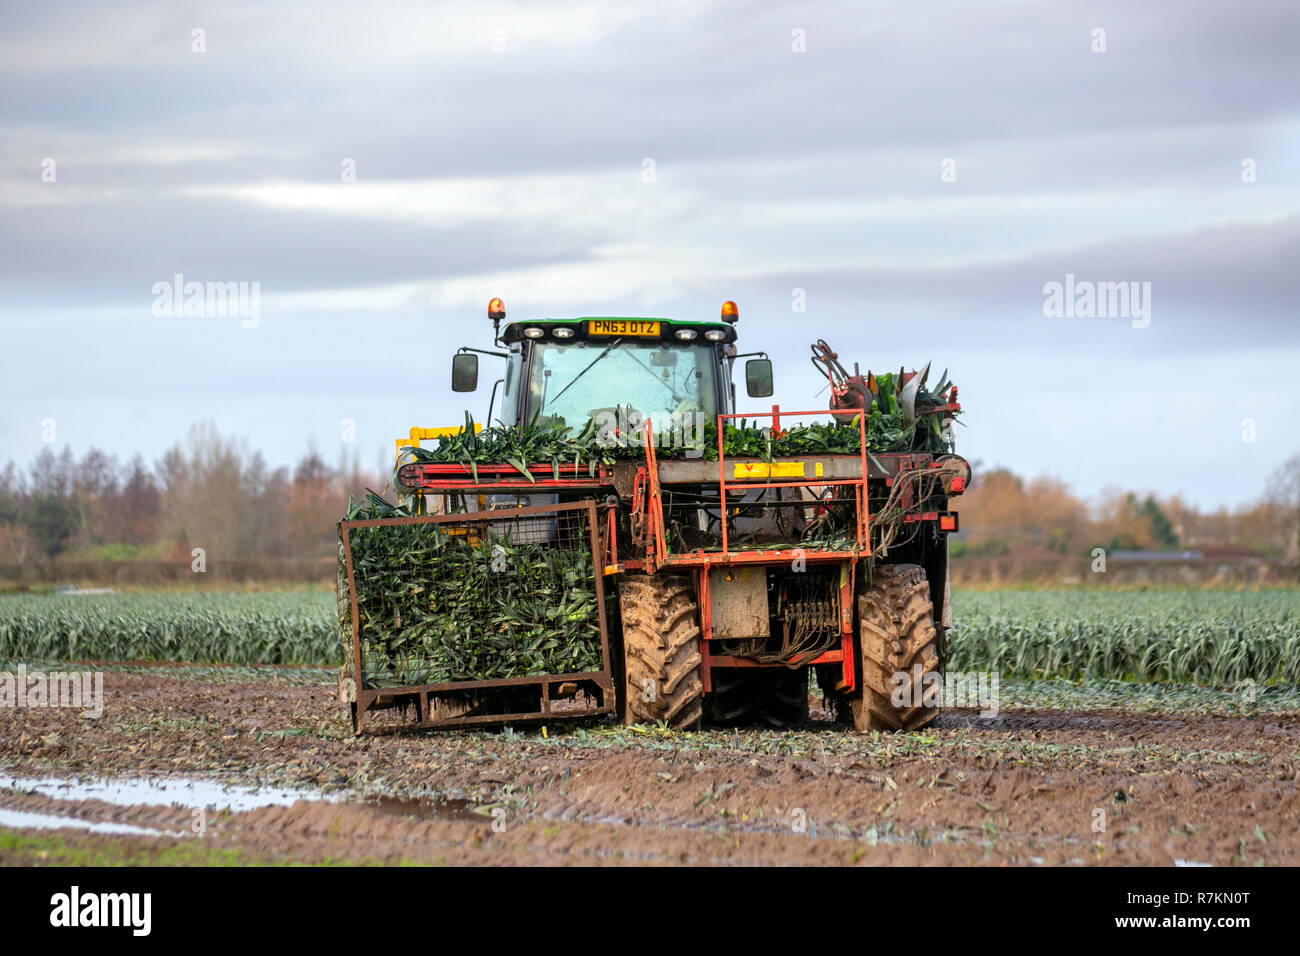 Burscough, Lancashire. 10th Dec 2018. UK Weather: Mechanical harvesting leeks on sodden fields. During spells of wet weather or in damp conditions, leek rust may attack the crops. Leek producers are now struggling to make ends meet according as the cold spring and record dry summer take their toll on a category that is already losing market share. Leeks are tolerant of cold, so harvest is delayed until after the first frosts. According to the British Growers Association  yields are already down 23 per cent. Credit: MediaWorldImages/AlamyLiveNews Stock Photo